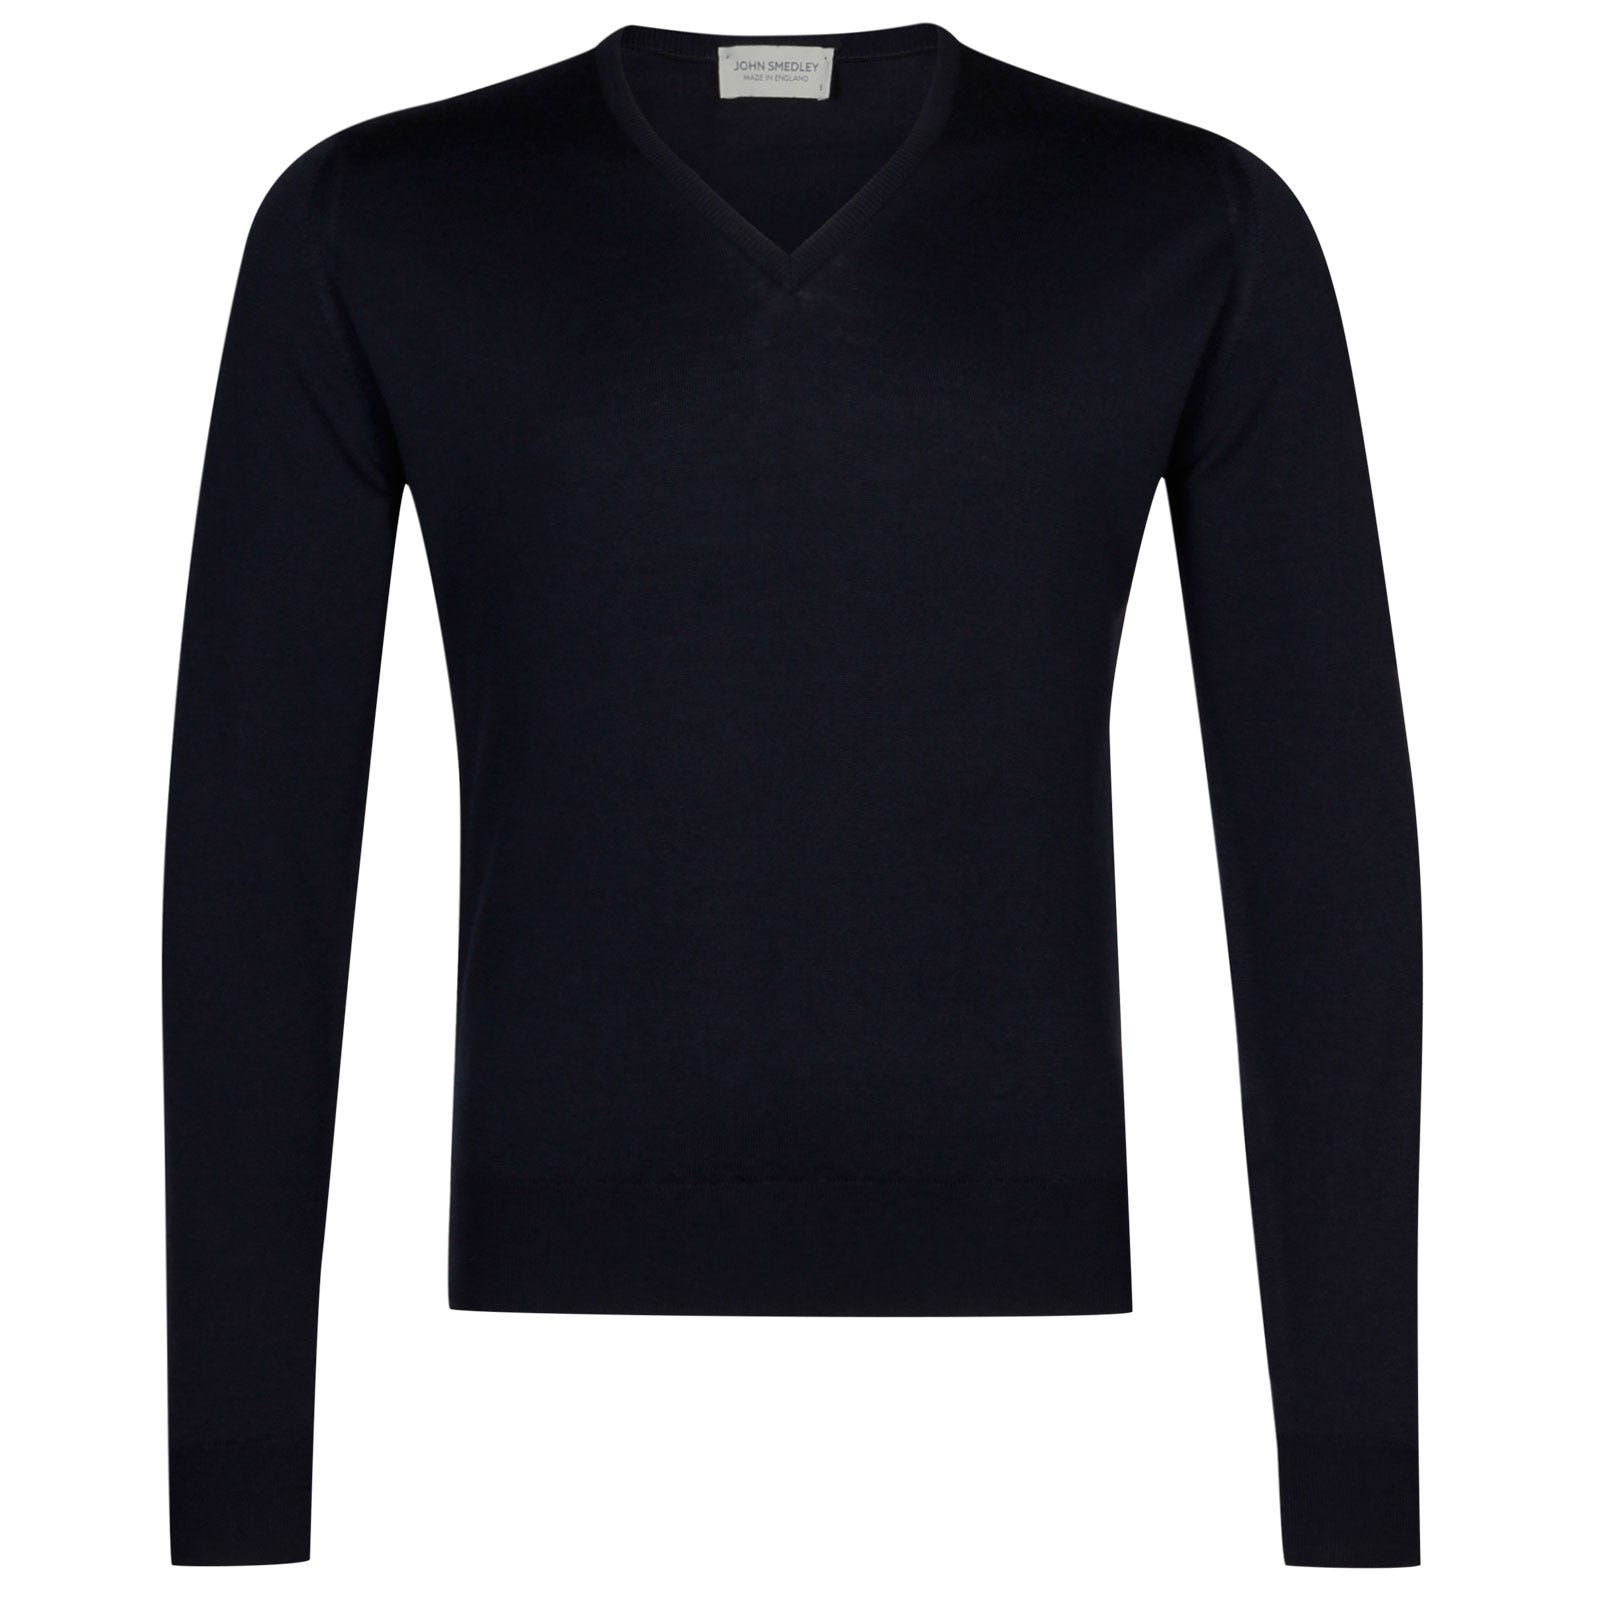 John Smedley Lugano Merino Wool Pullover in Midnight-XL